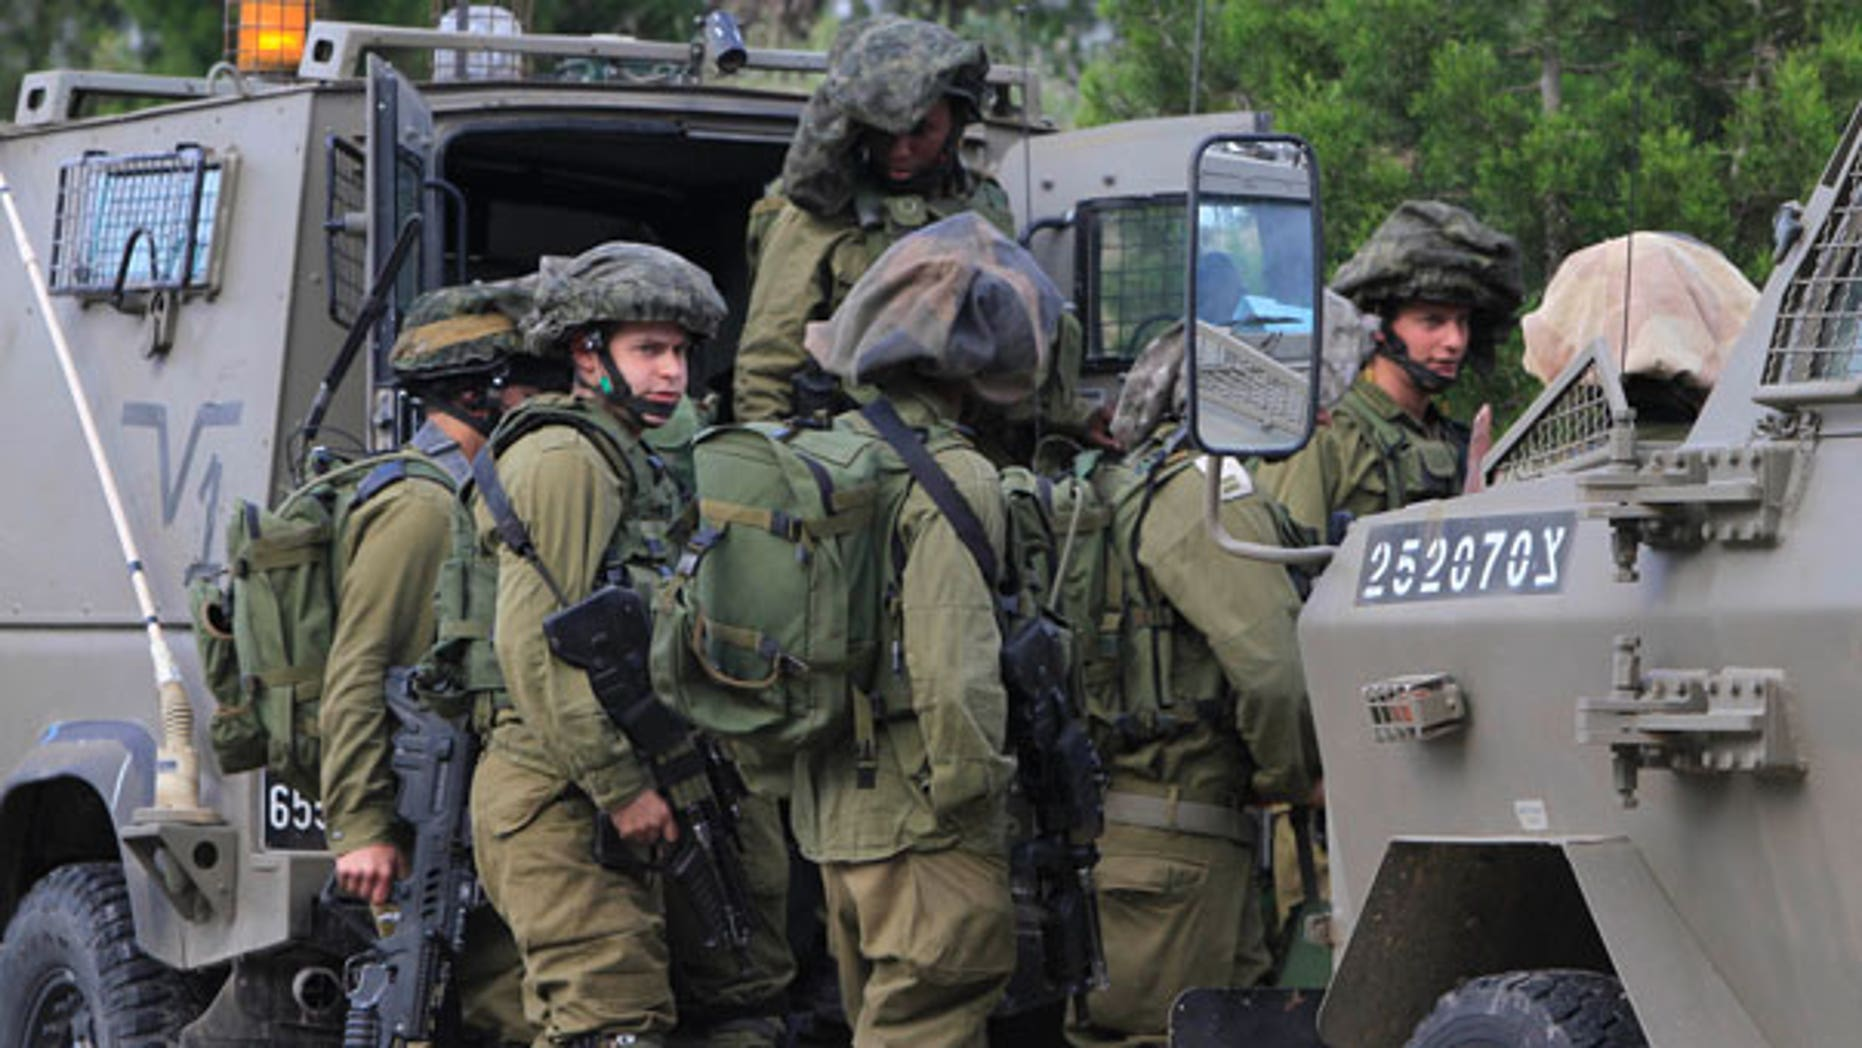 March 26: Israeli soldiers are seen at the Gaza Strip on the border with Israel. The Israeli military says two soldiers have been killed in an exchange of fire with militants who were planting explosives along the security fence in the southern Gaza Strip.